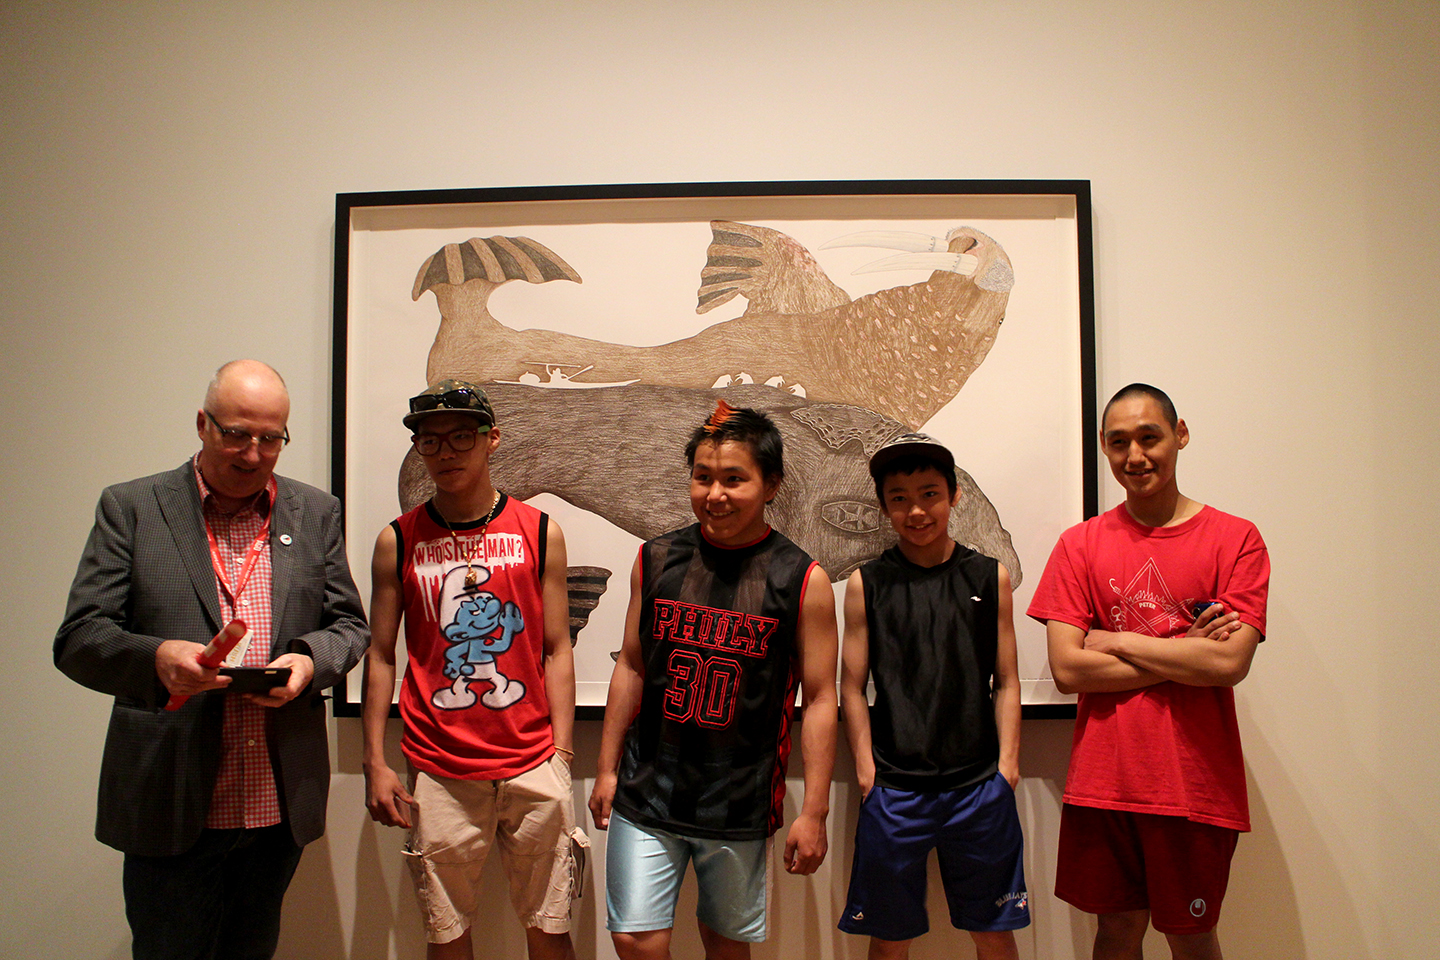 Andrew Hunter from the Art Gallery of Ontario poses with the youth in front of a drawing by Tim Pitsiulak. Photo by Alexa Hatanaka.